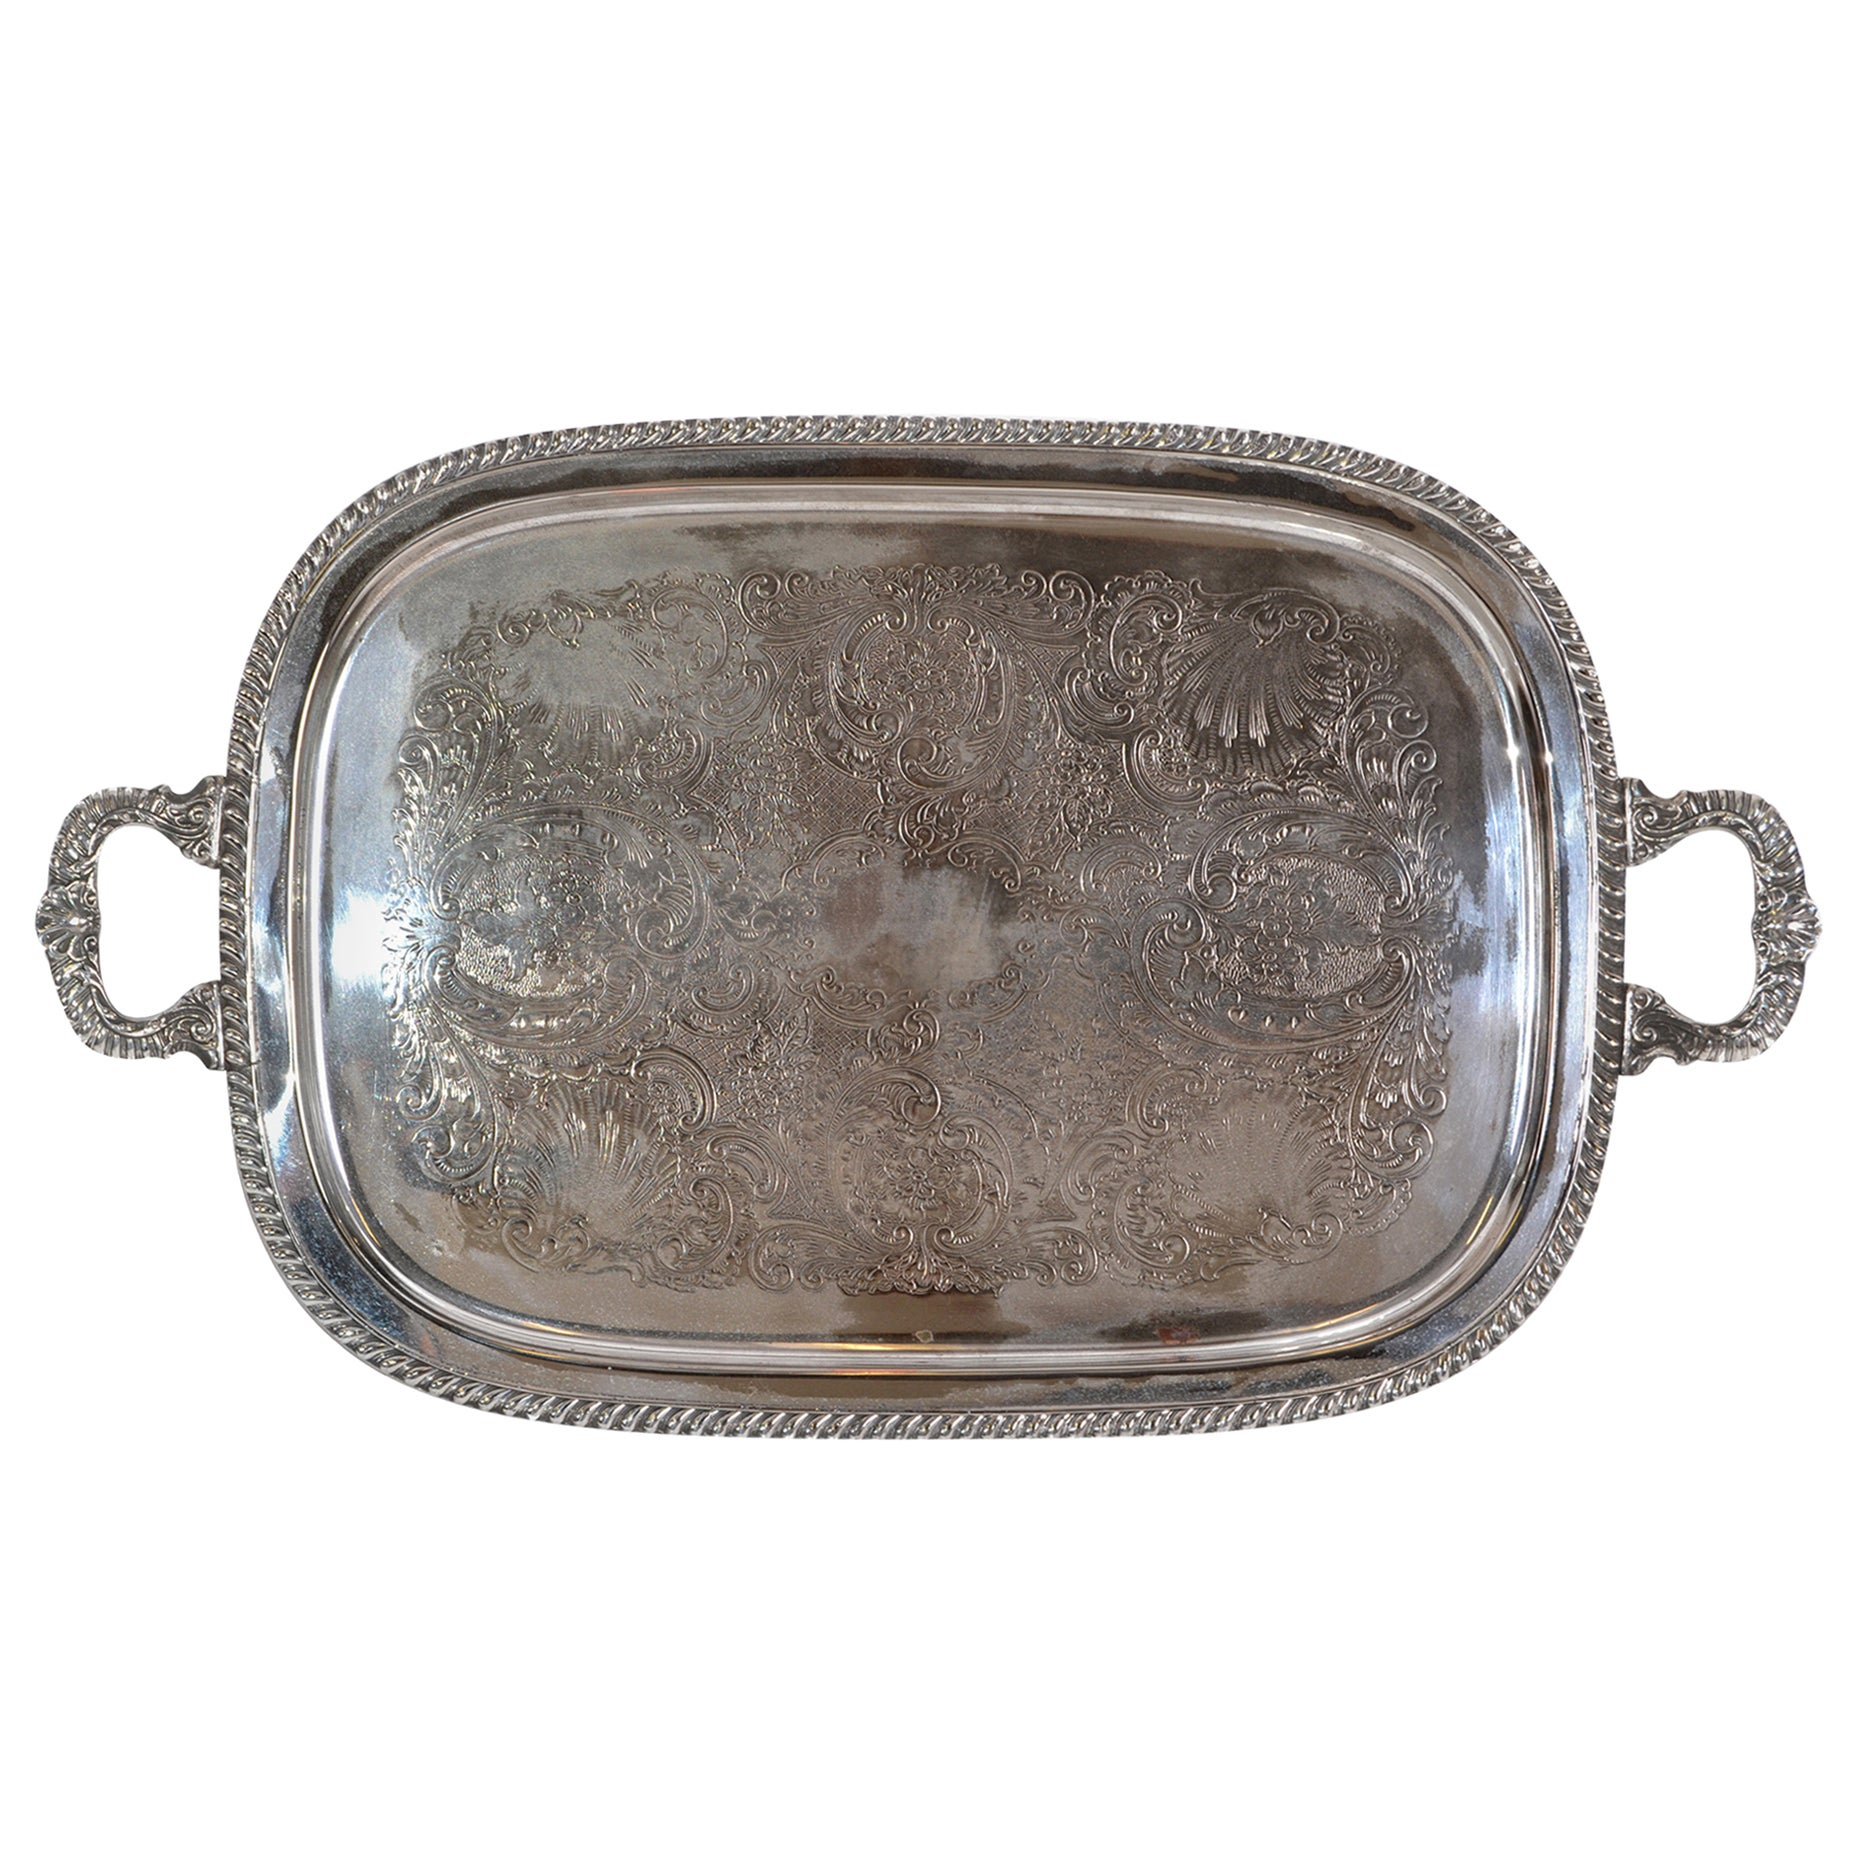 Old English Silver Plate Ornate Rectangular Footed Serving Tray with Handles